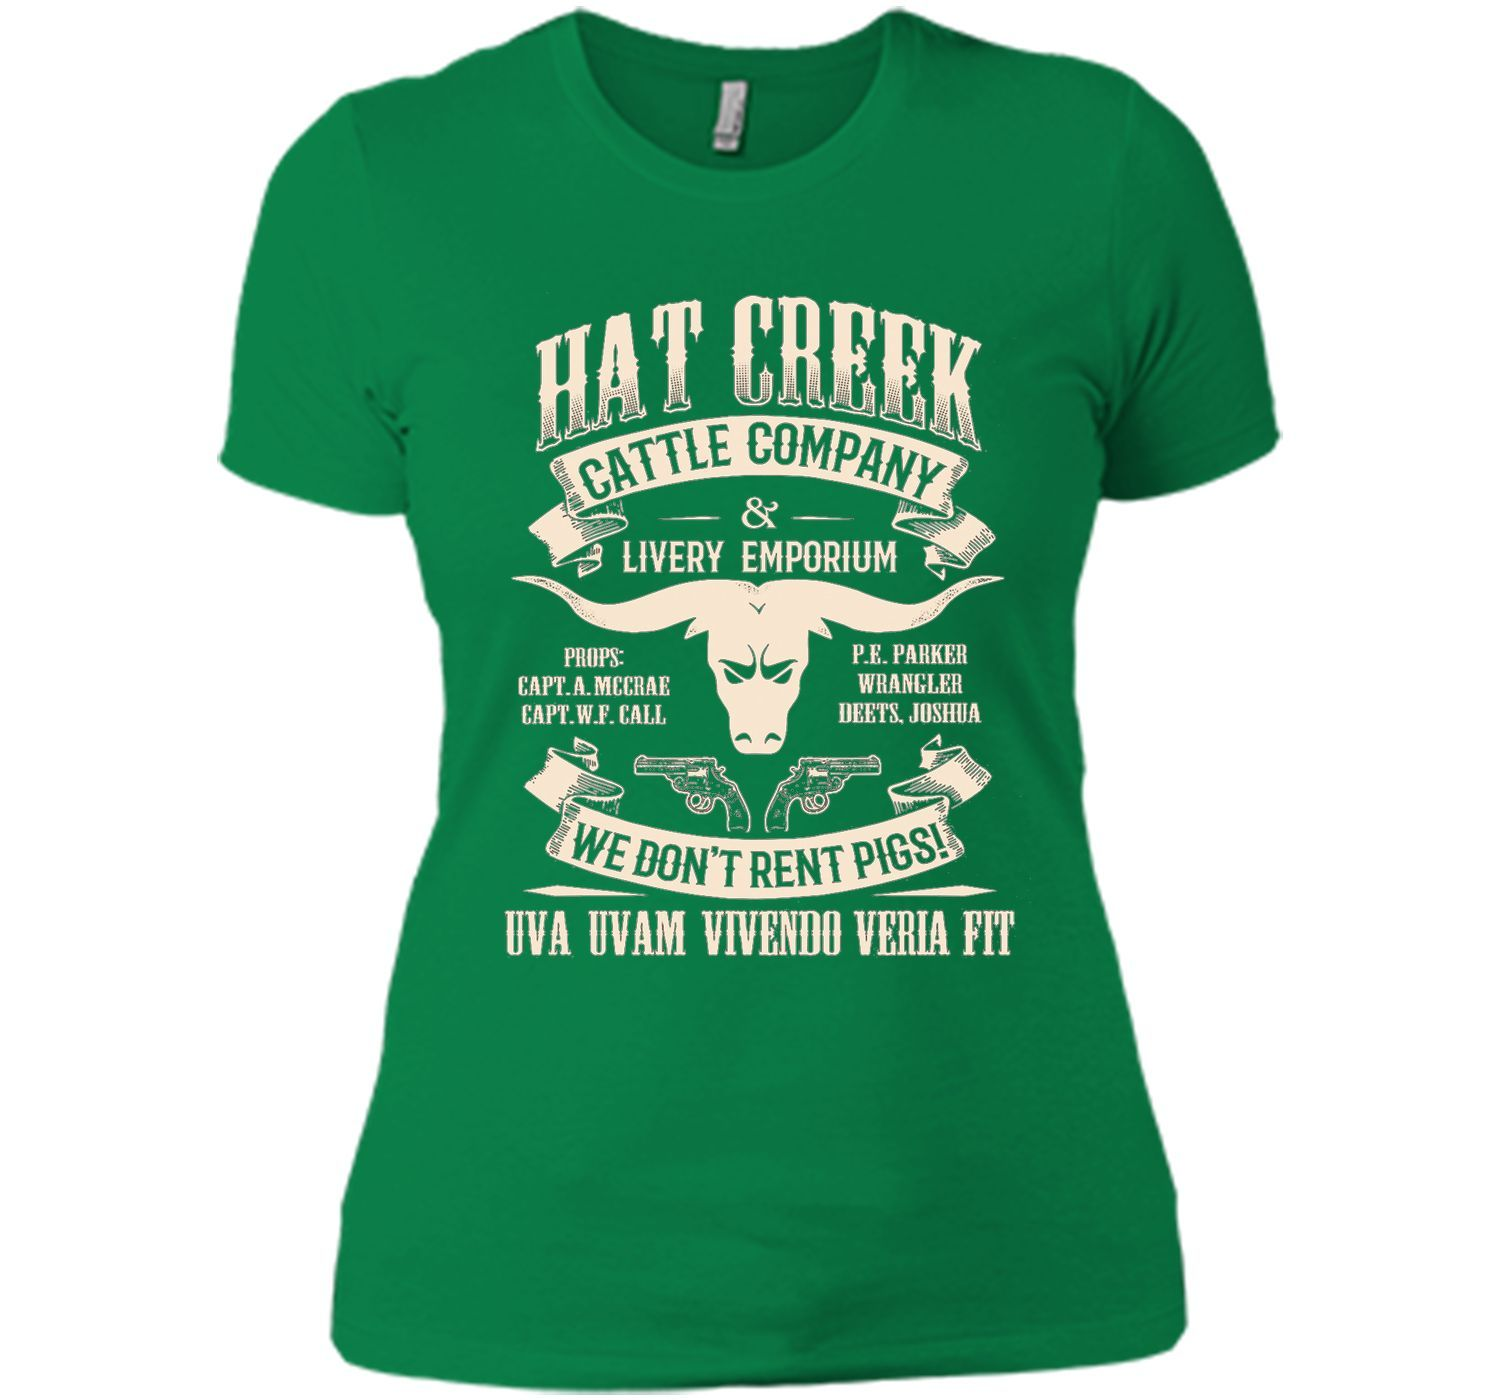 960a11c5100 Lonesome dove hat creek cattle company shirt ideas jpg 1500x1400 Lonesome  dove shirt